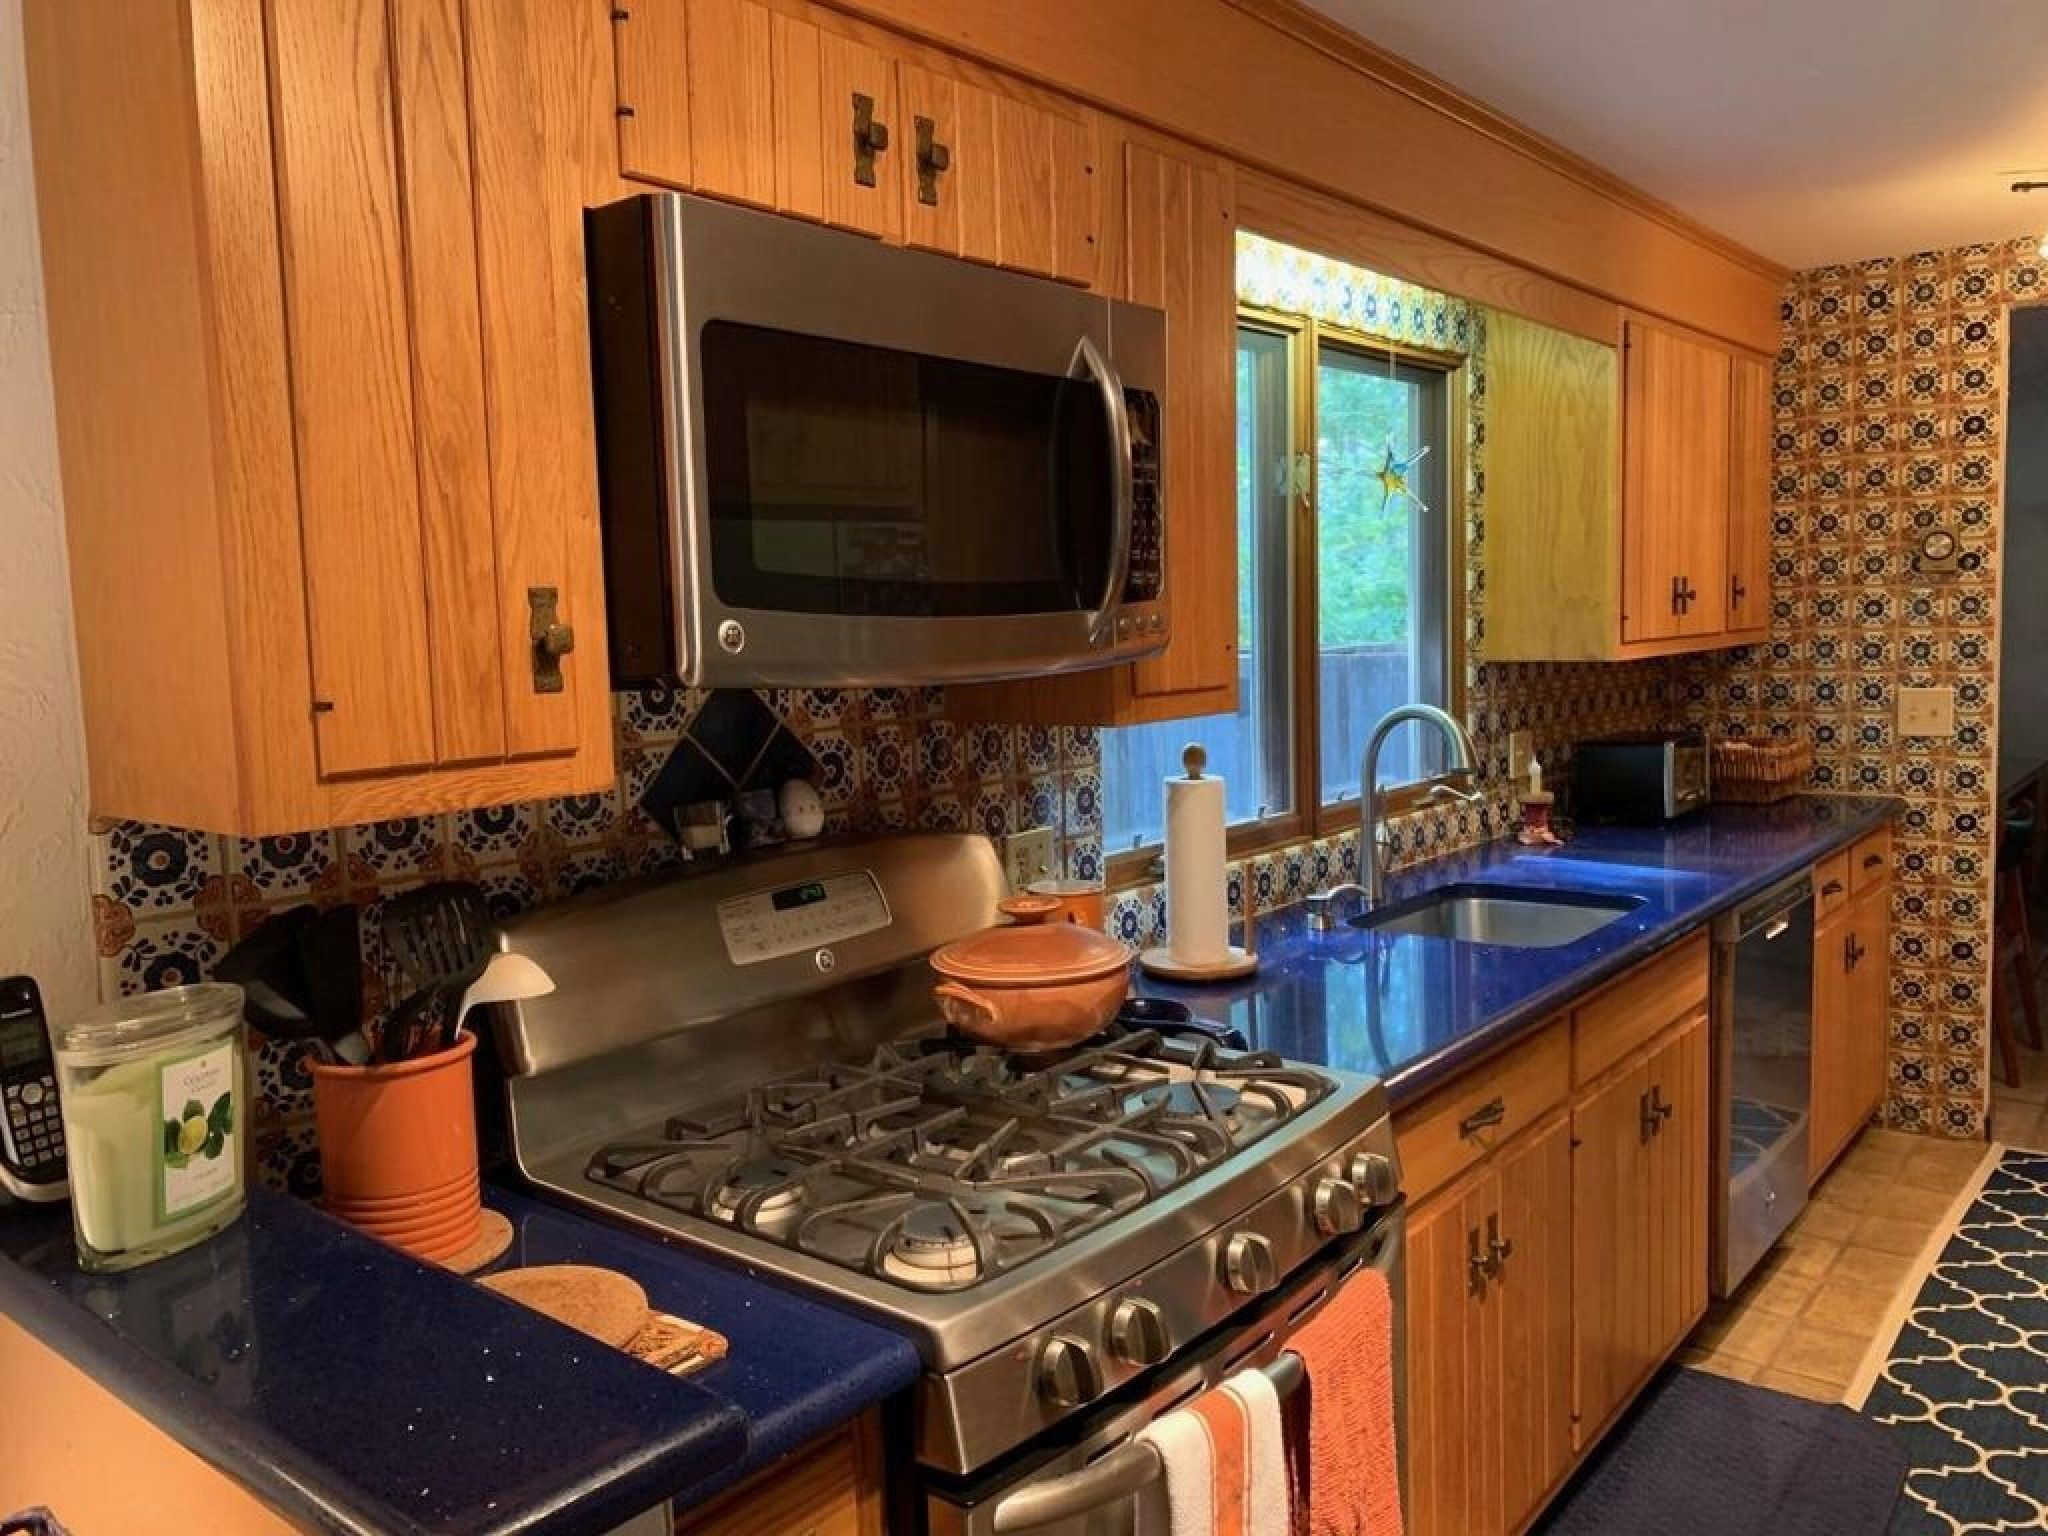 Pin By Susan Wilcox Harris On Caja Tejas In 2020 Kitchen Cabinets Kitchen Decor